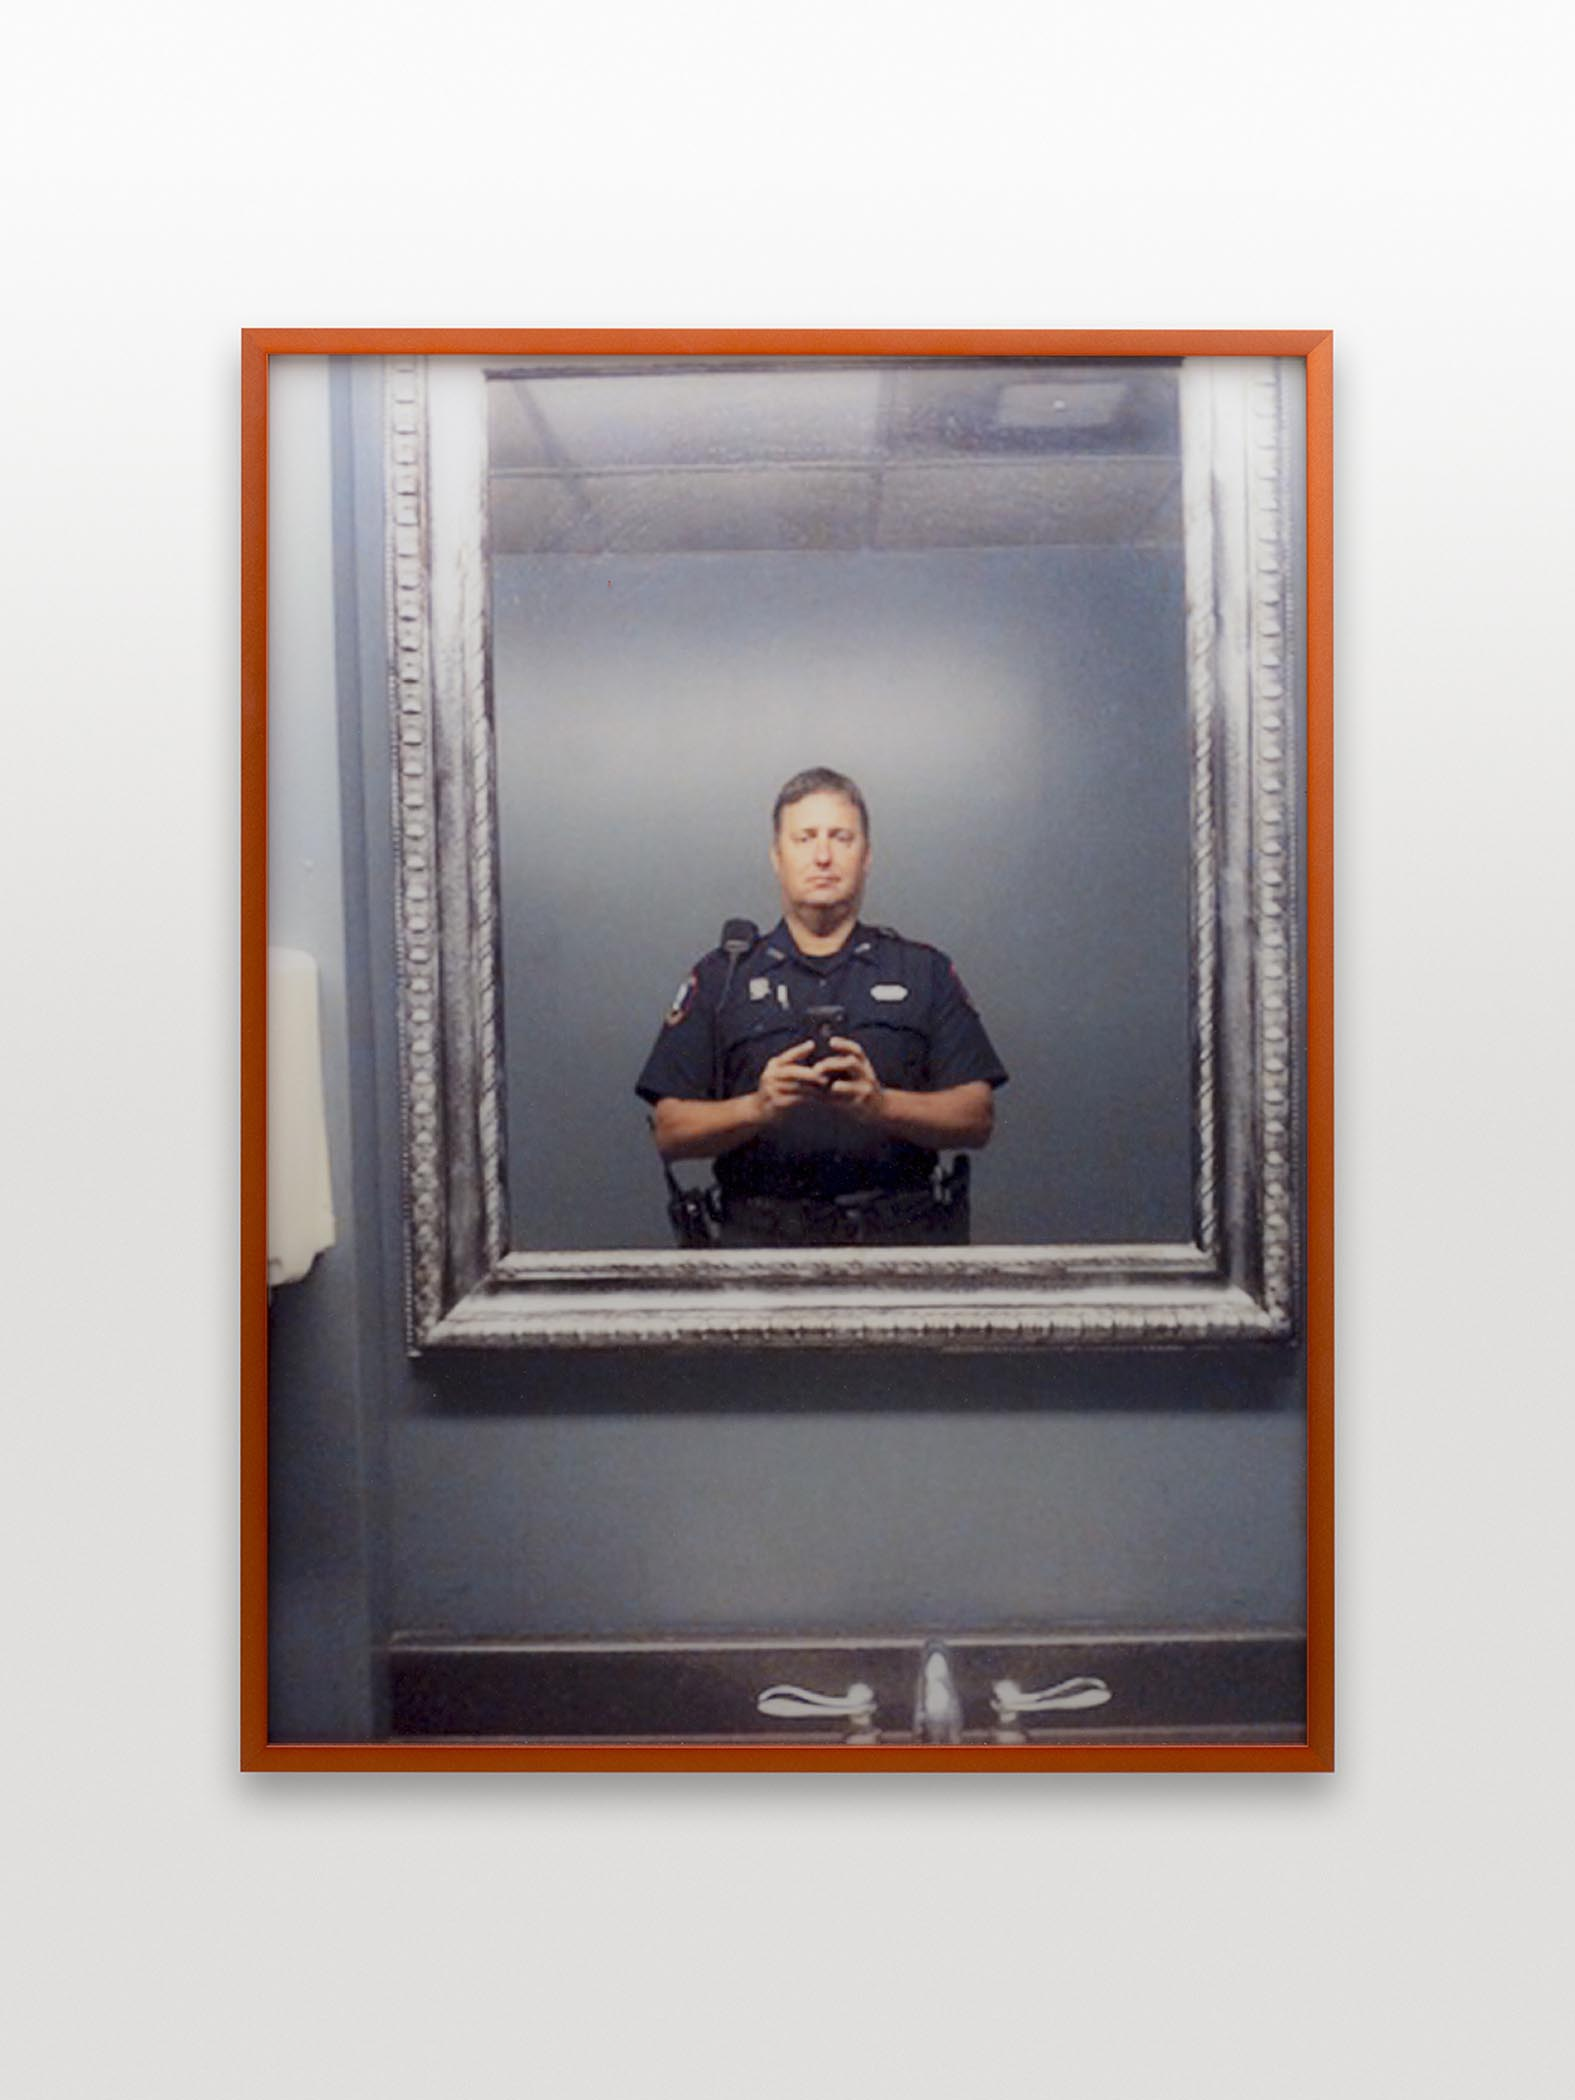 Brute-force: xtxp8.jpg (cop selfie), 2014 Framed archival inkjet print, 20x30 in Individual user cell phone photographs stolen via brute-force sever attack.